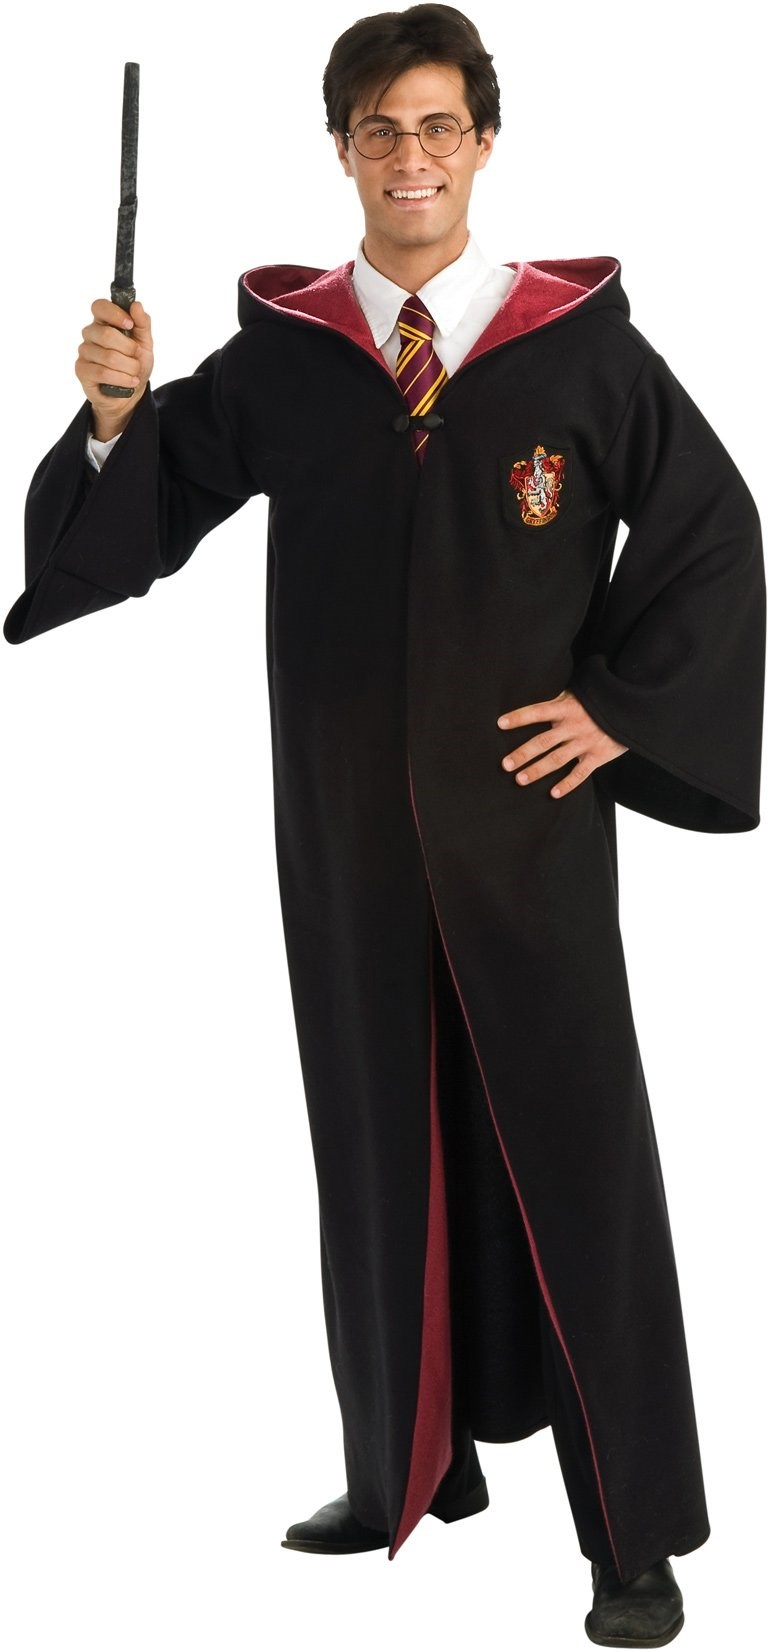 Image of Harry Potter Deluxe Robe Adult Costume